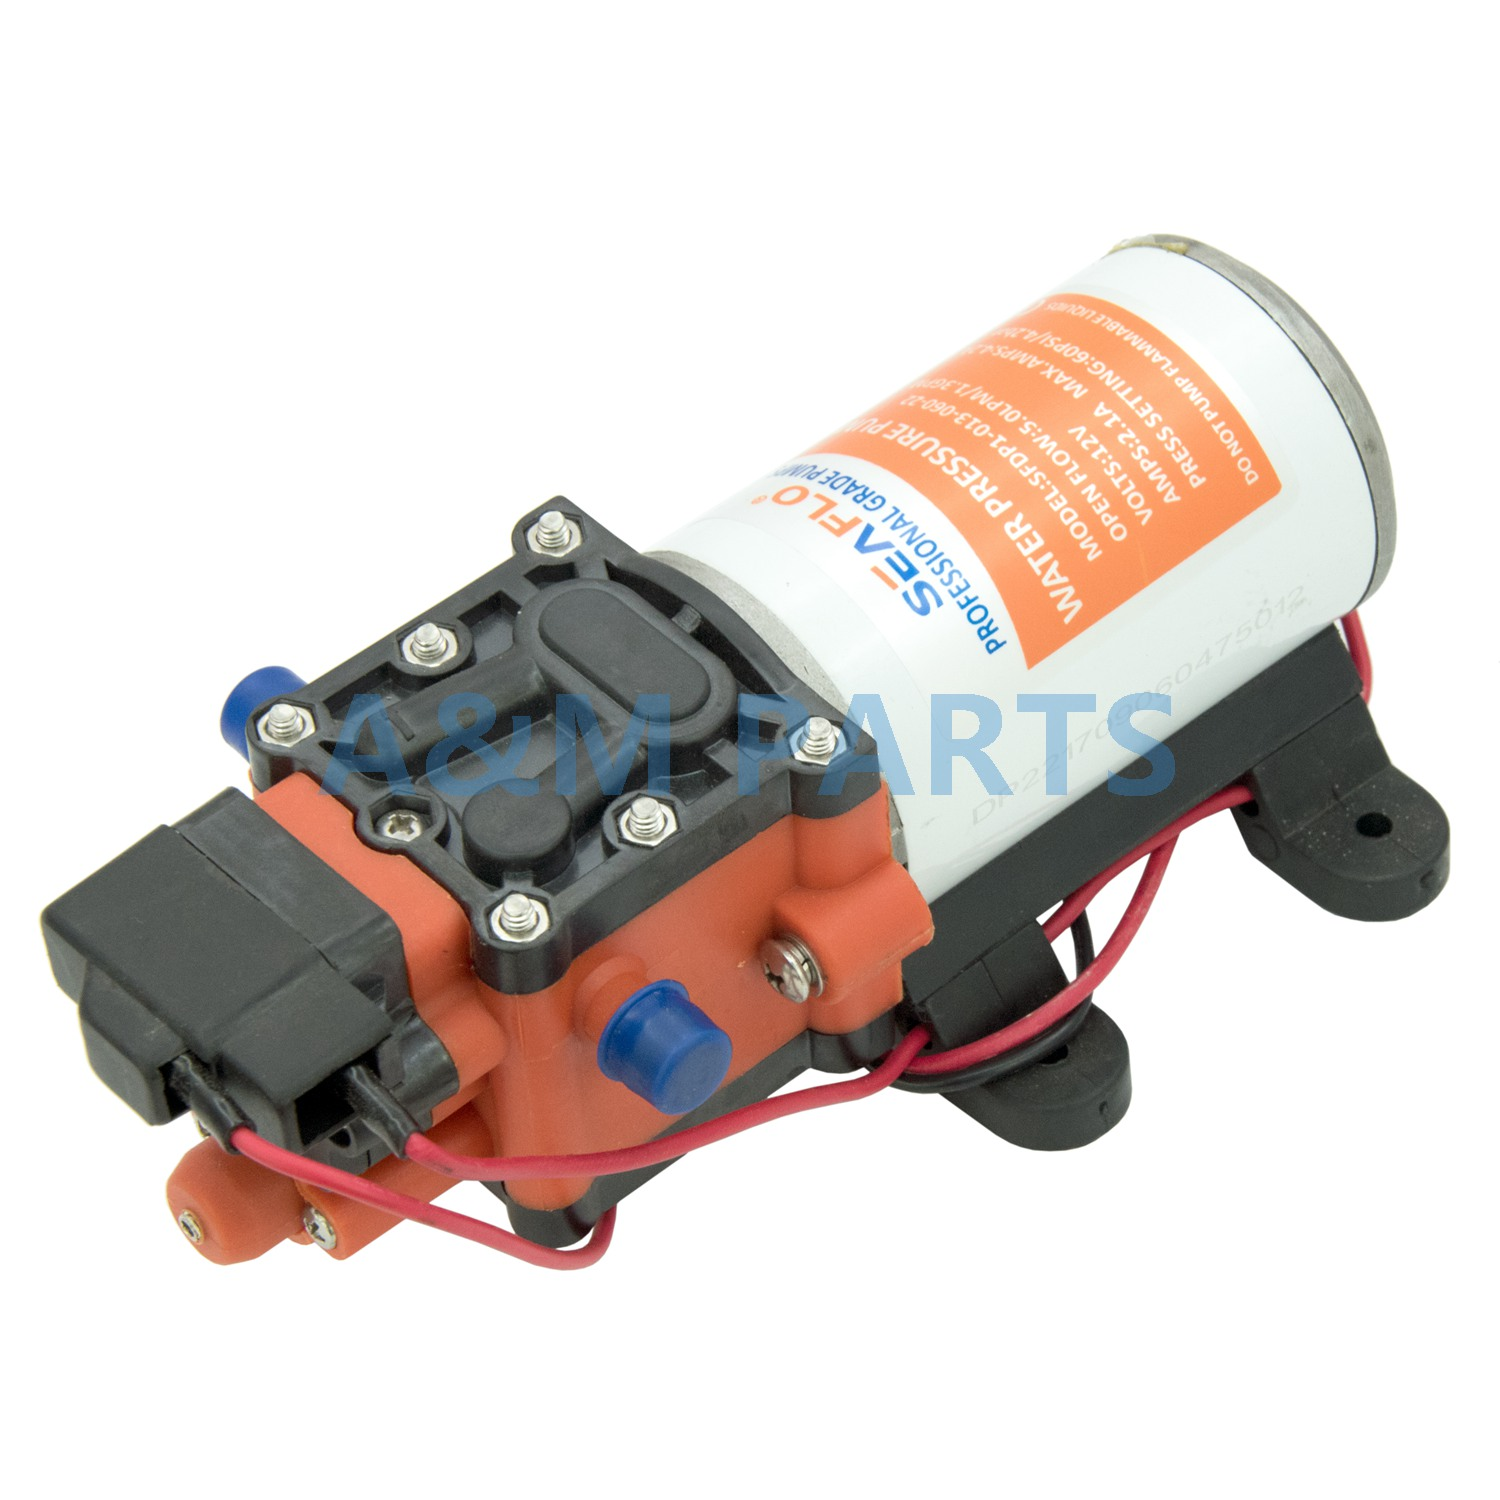 12V 60PSI 1.3 GPM Diaphragm Pump Boat RV Water Pressure Self Priming Pump